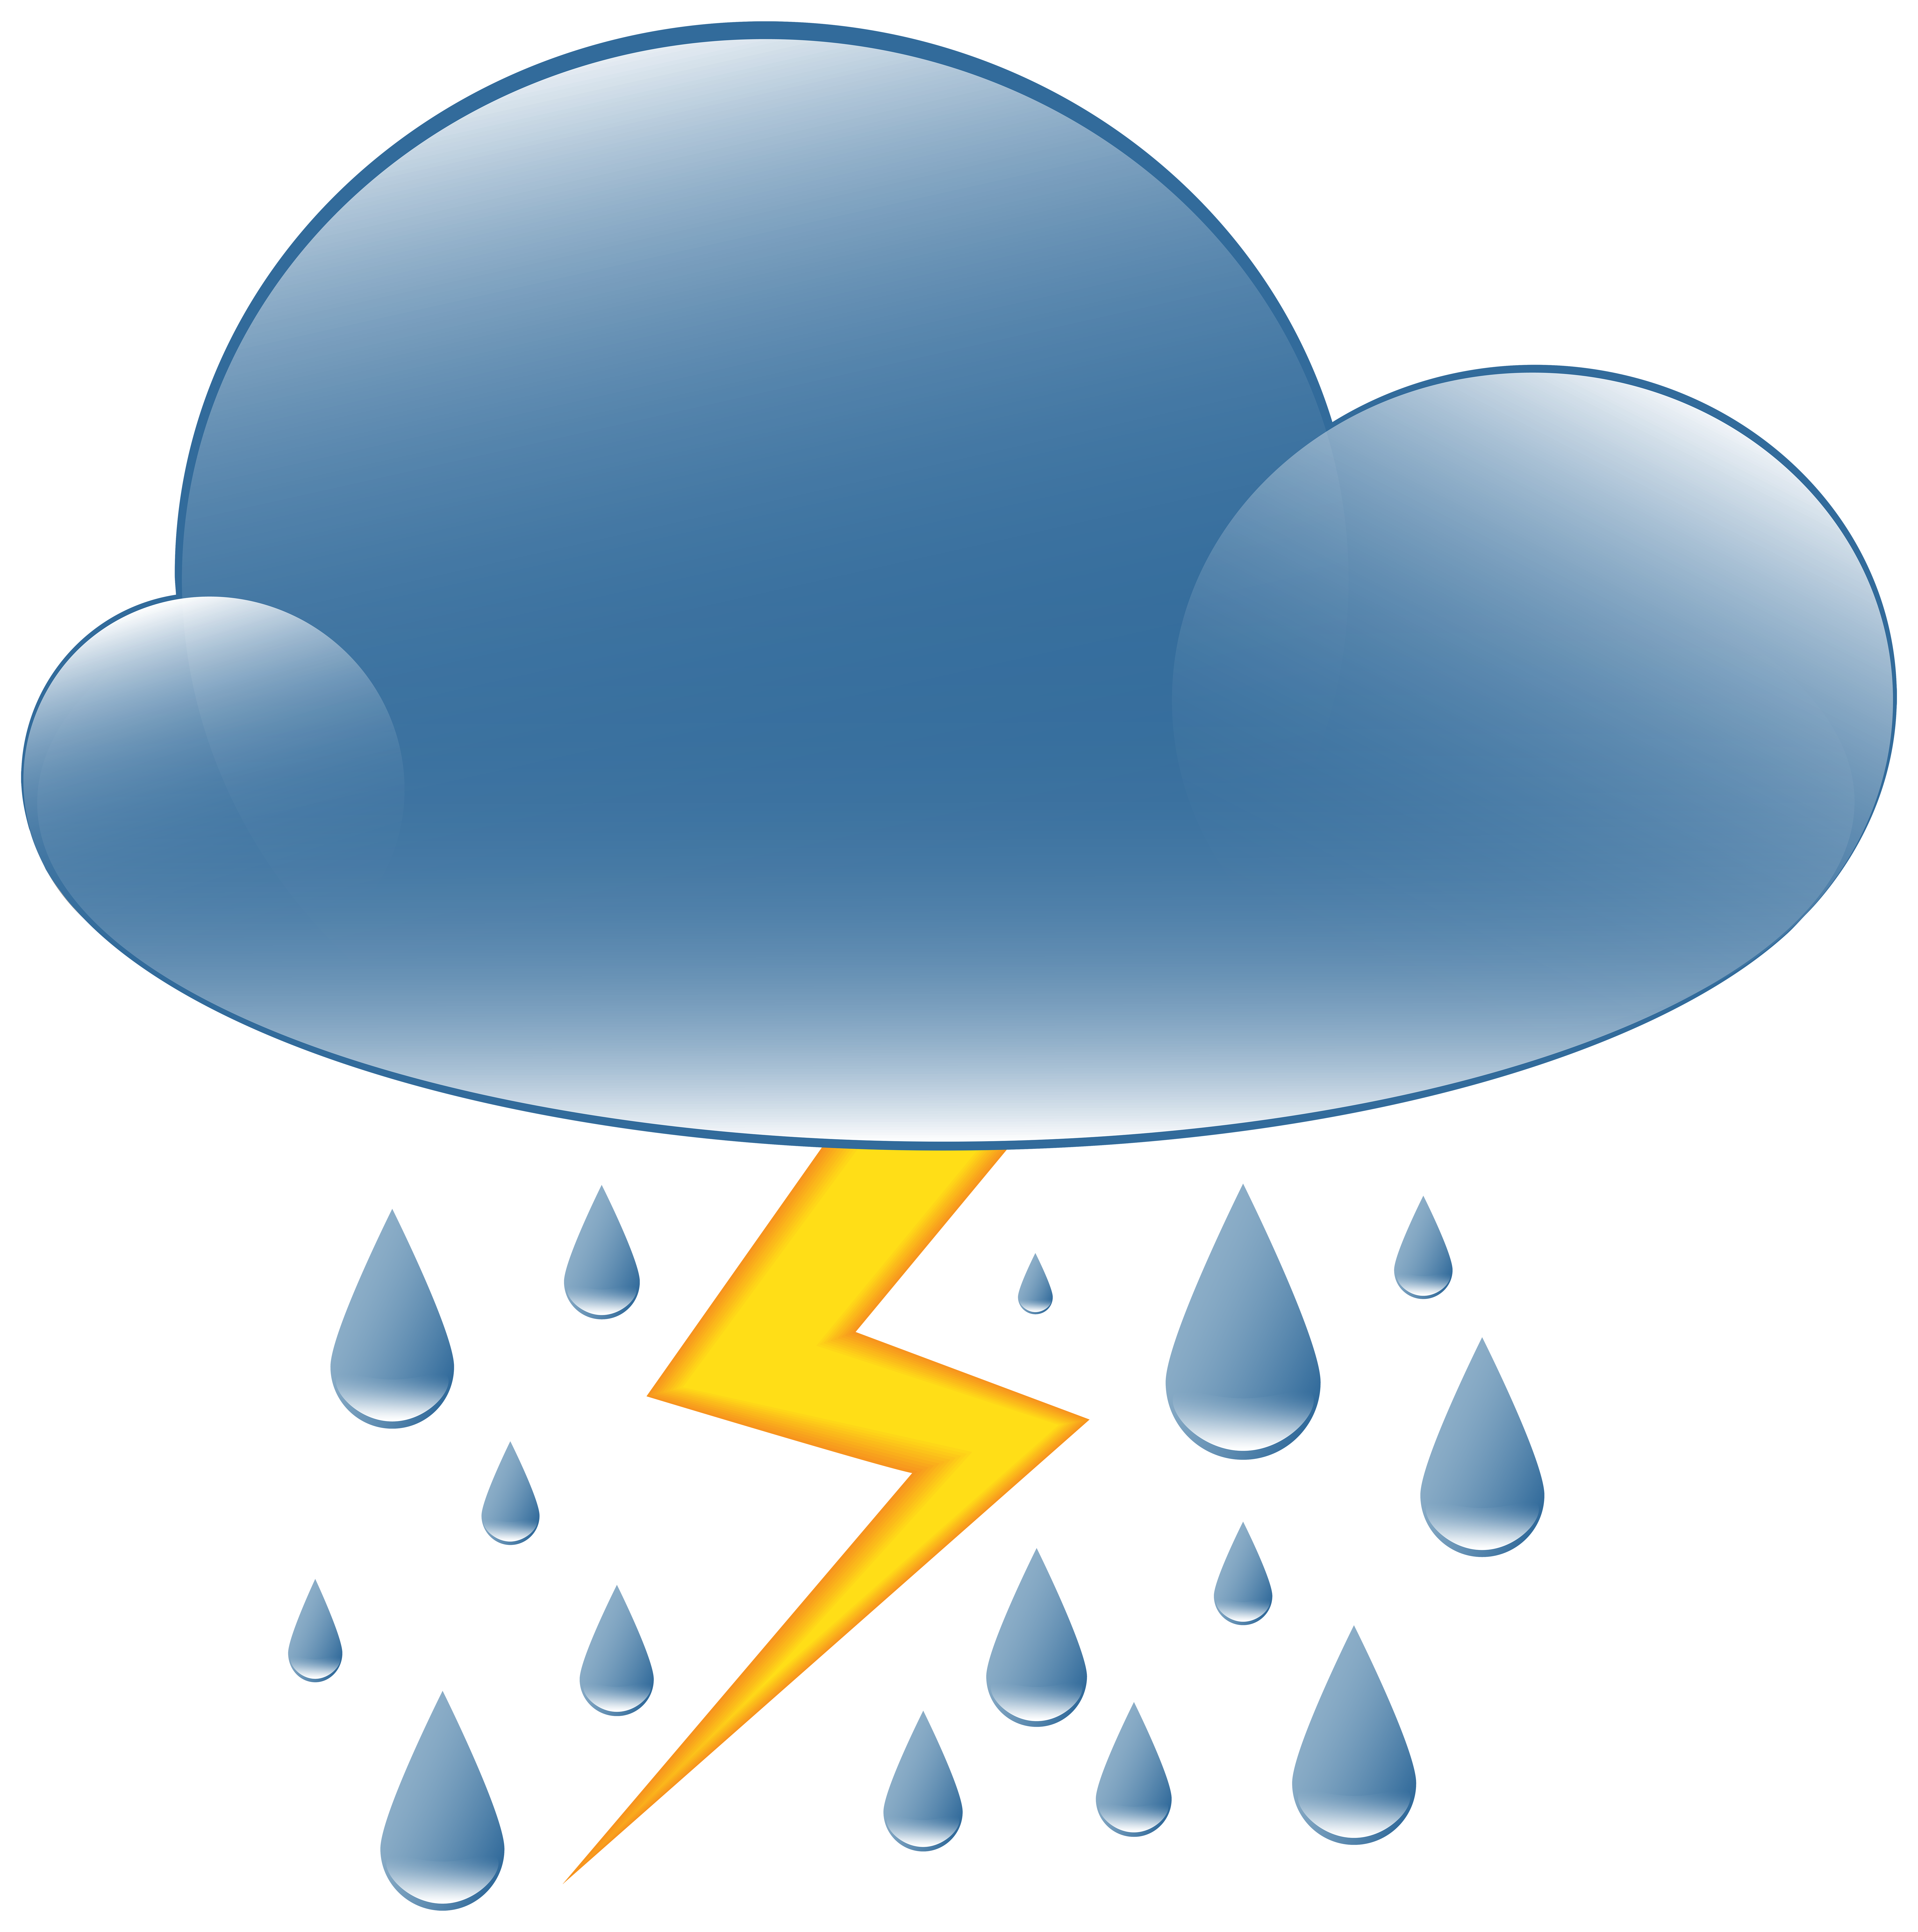 Thundery showers weather icon. Lighting clipart thunderstorm safety